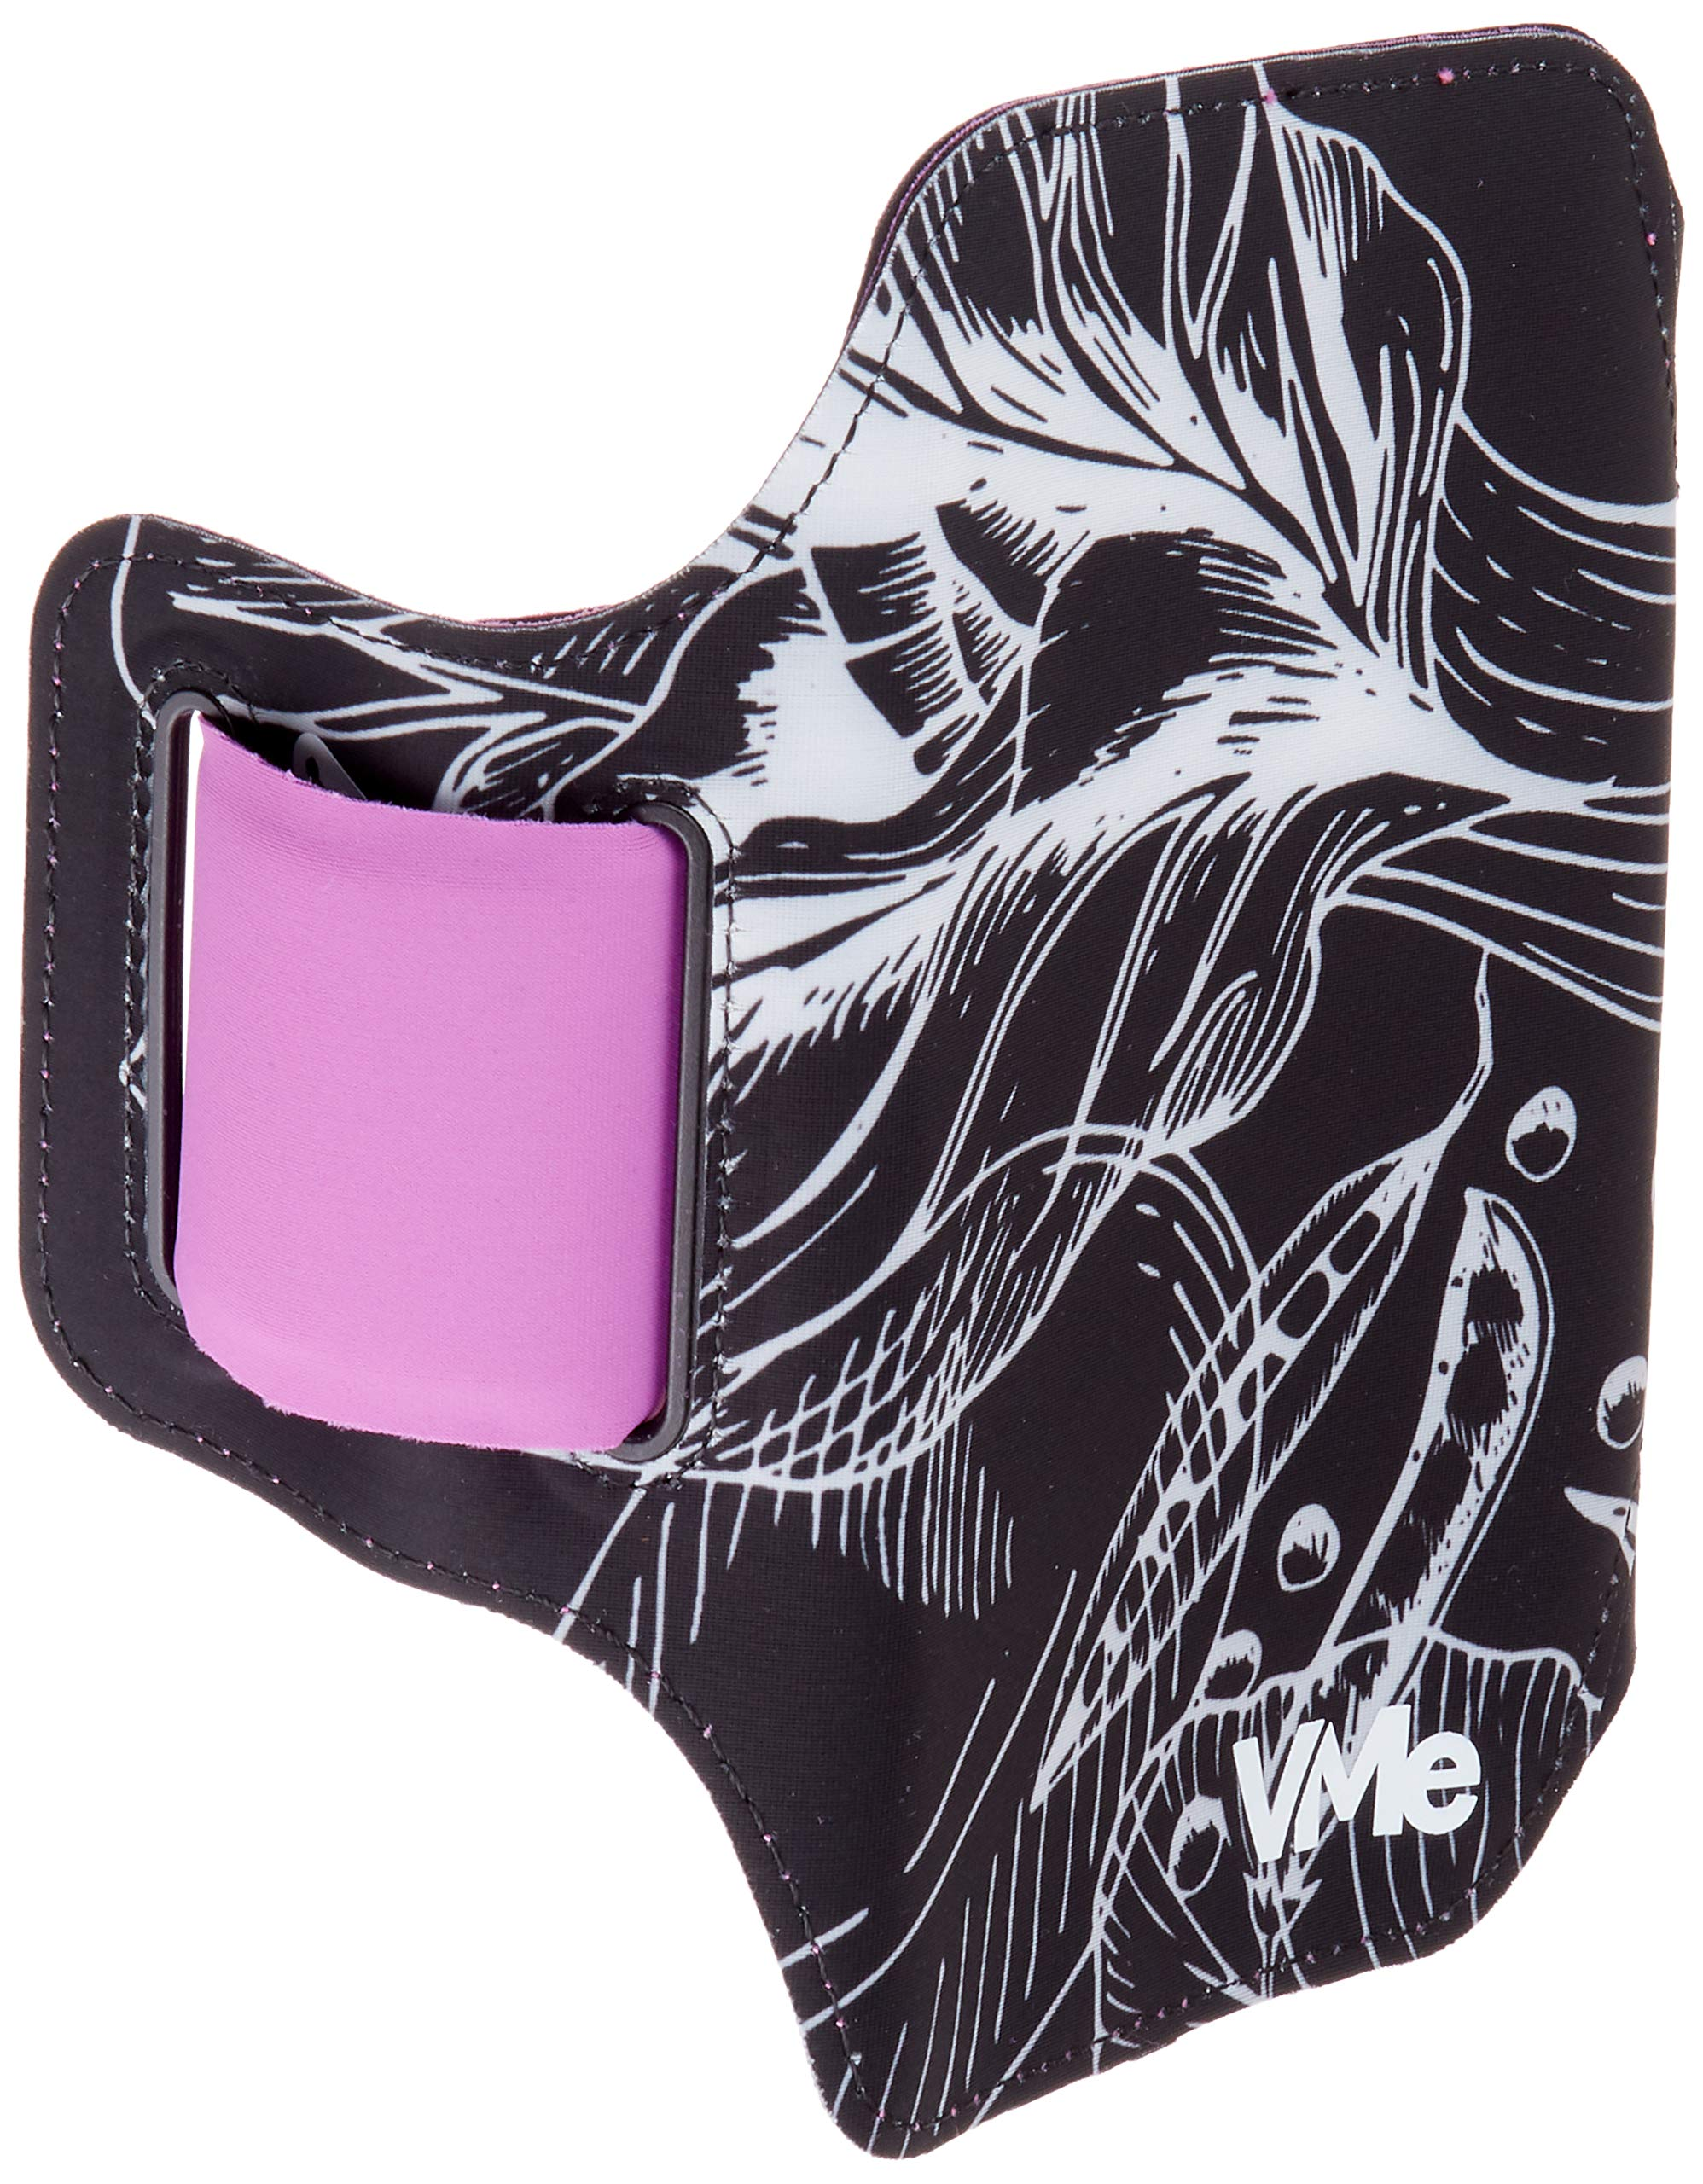 VMe Abstract and Fun Vegan Design Running Armband for iPhone X, Xs, Xr, 8, 7, 6, Galaxy S9, S8, S7 with Adjustable Band & Key/Card Slot ... (Leafy Black/Purple) by VegetableMe